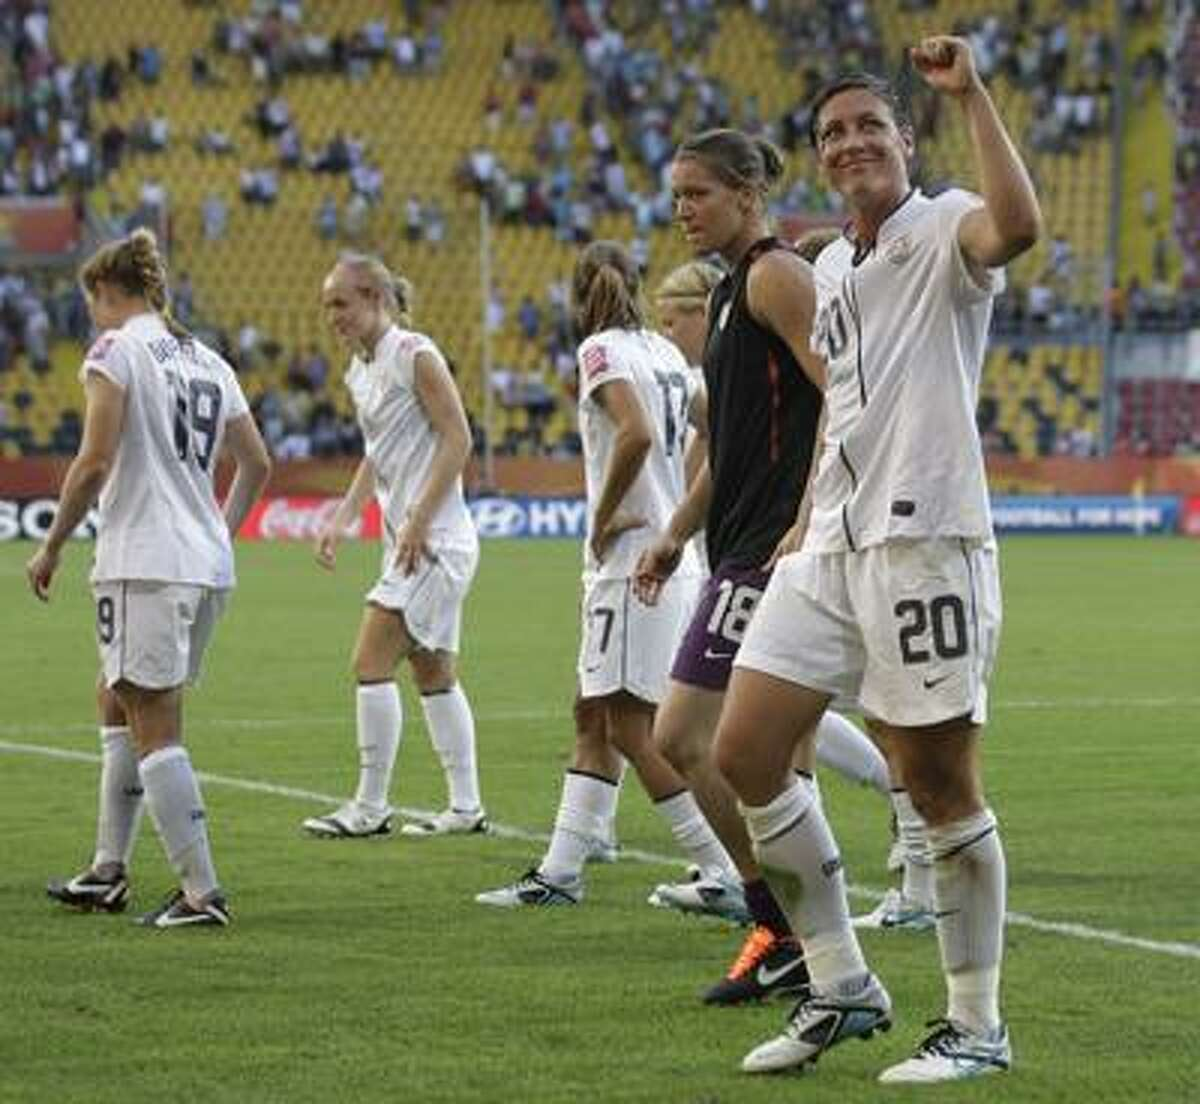 United States' Abby Wambach, right, reacts after the group C match between the United States and North Korea at the Women's Soccer World Cup in Dresden, Germany, Tuesday, June 28, 2011. The US team won 2-0. (AP Photo/Marcio Jose Sanchez)